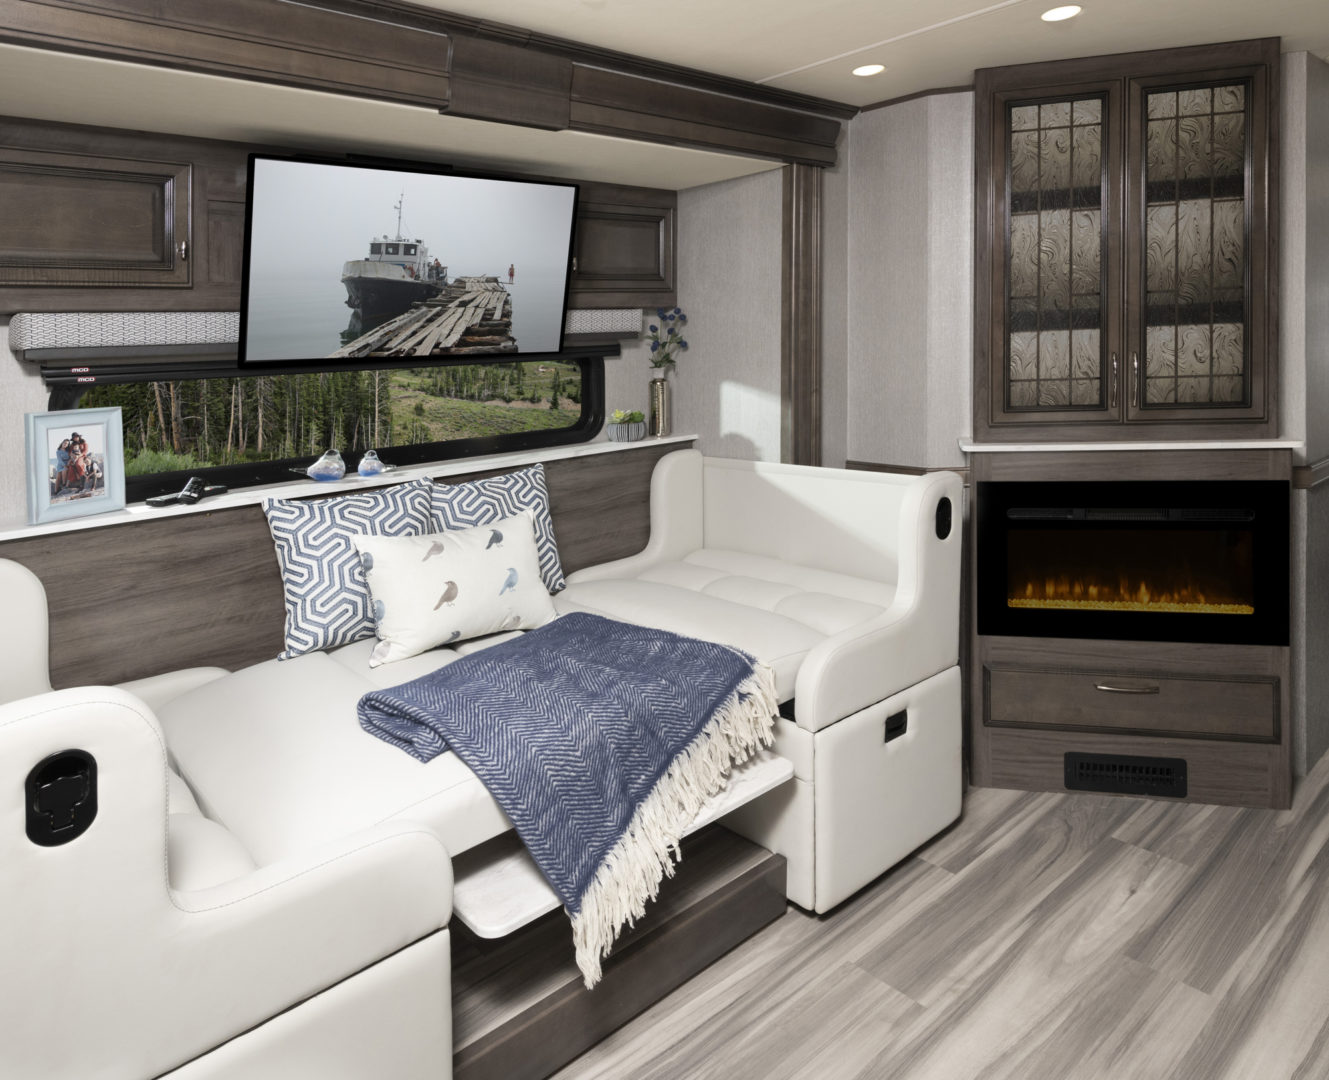 Nautica 33TL Metropolis Decor with Whispering Wind Cabinetry